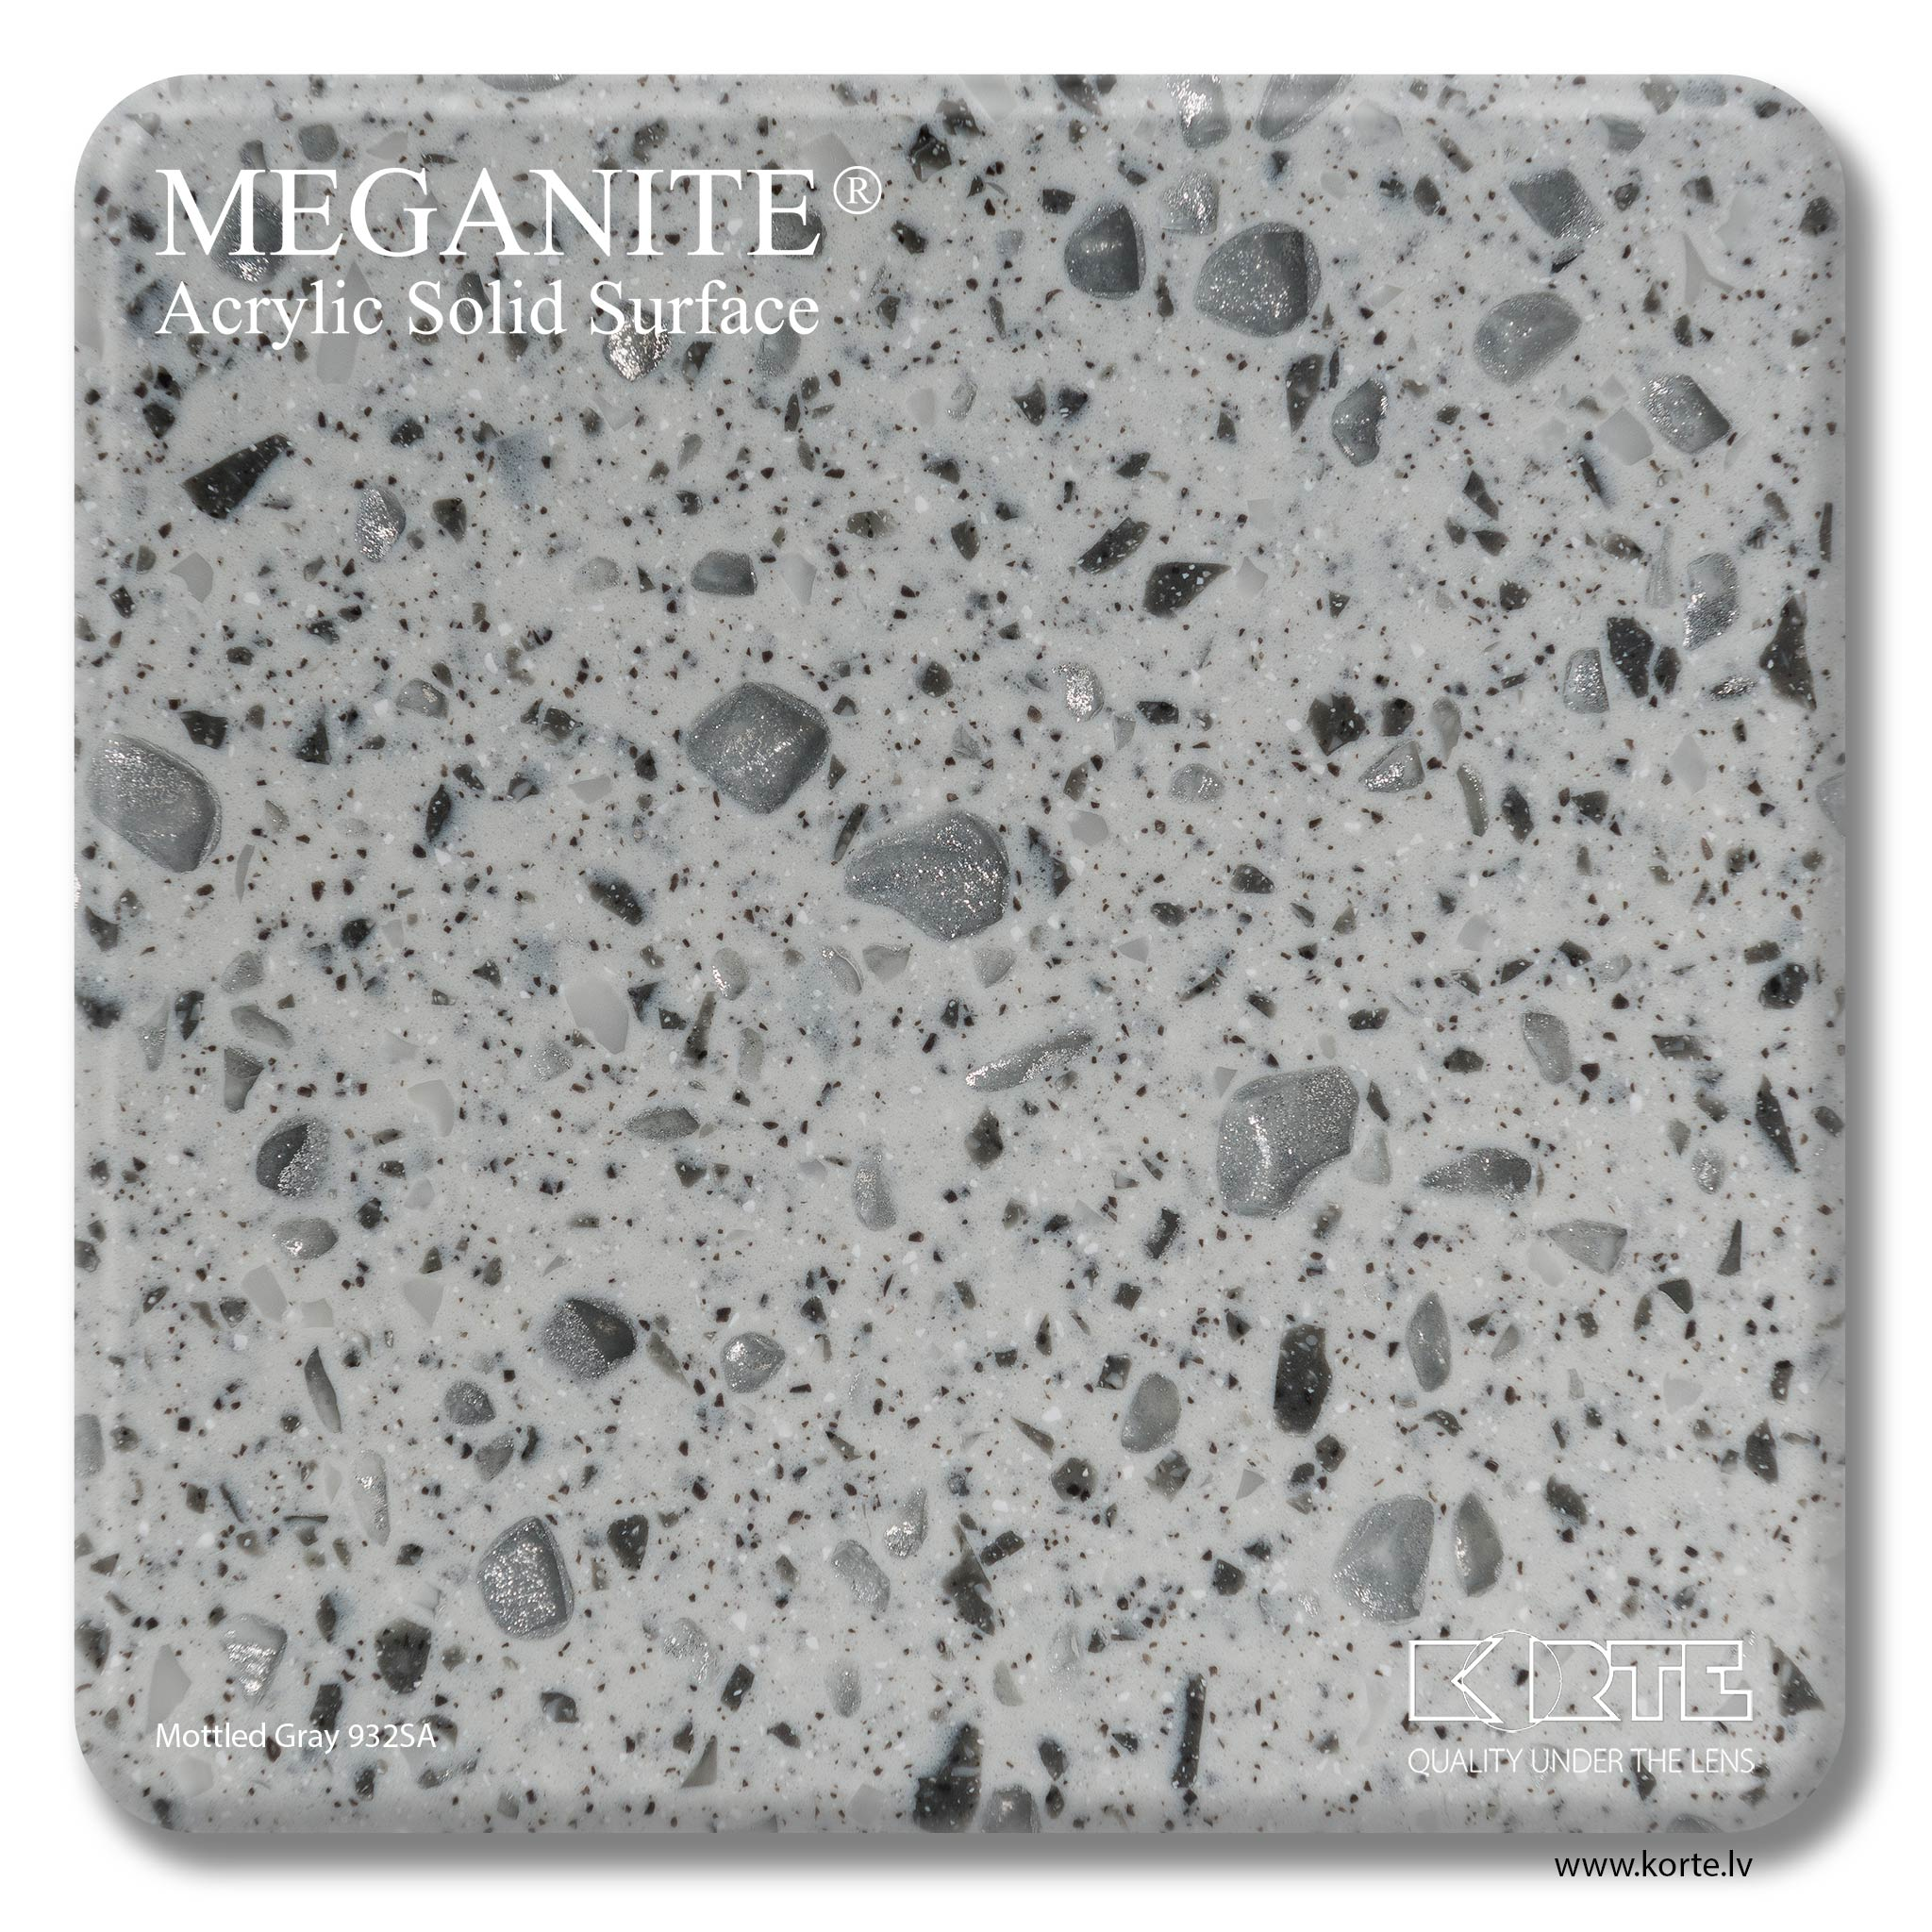 Meganite Mottled Gray 932SA